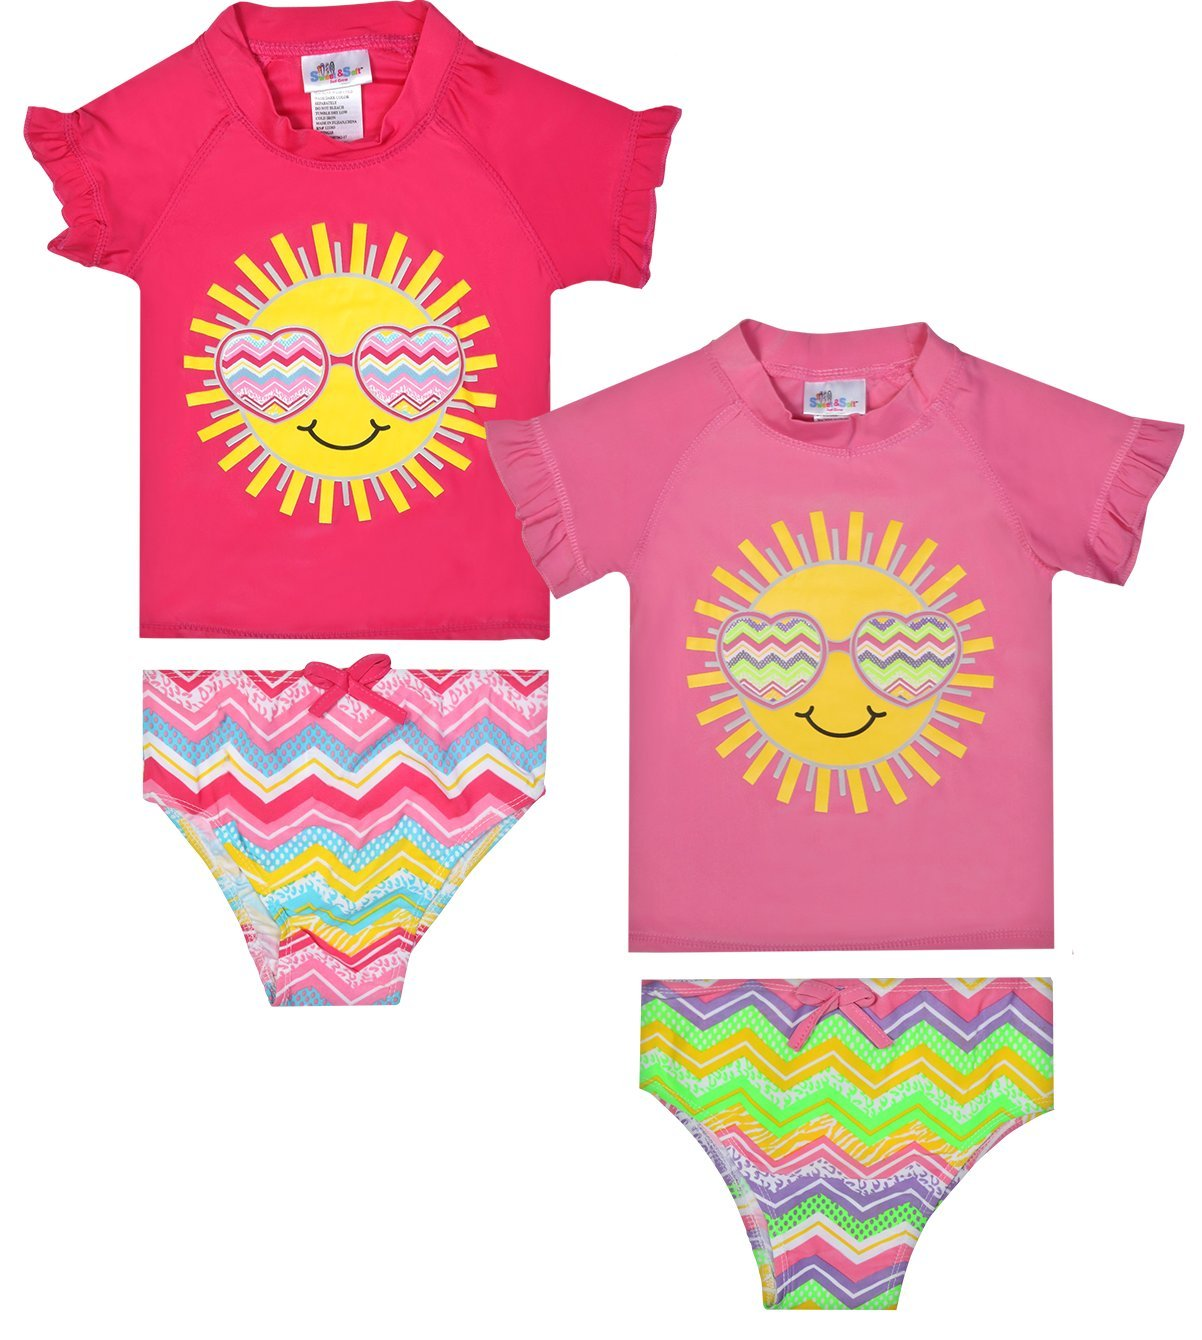 Sweet & Soft Baby Girl's 4-Piece Rash Guard and Bikini Swimsuit Sets, Sunglasses, Toddler (2T)'